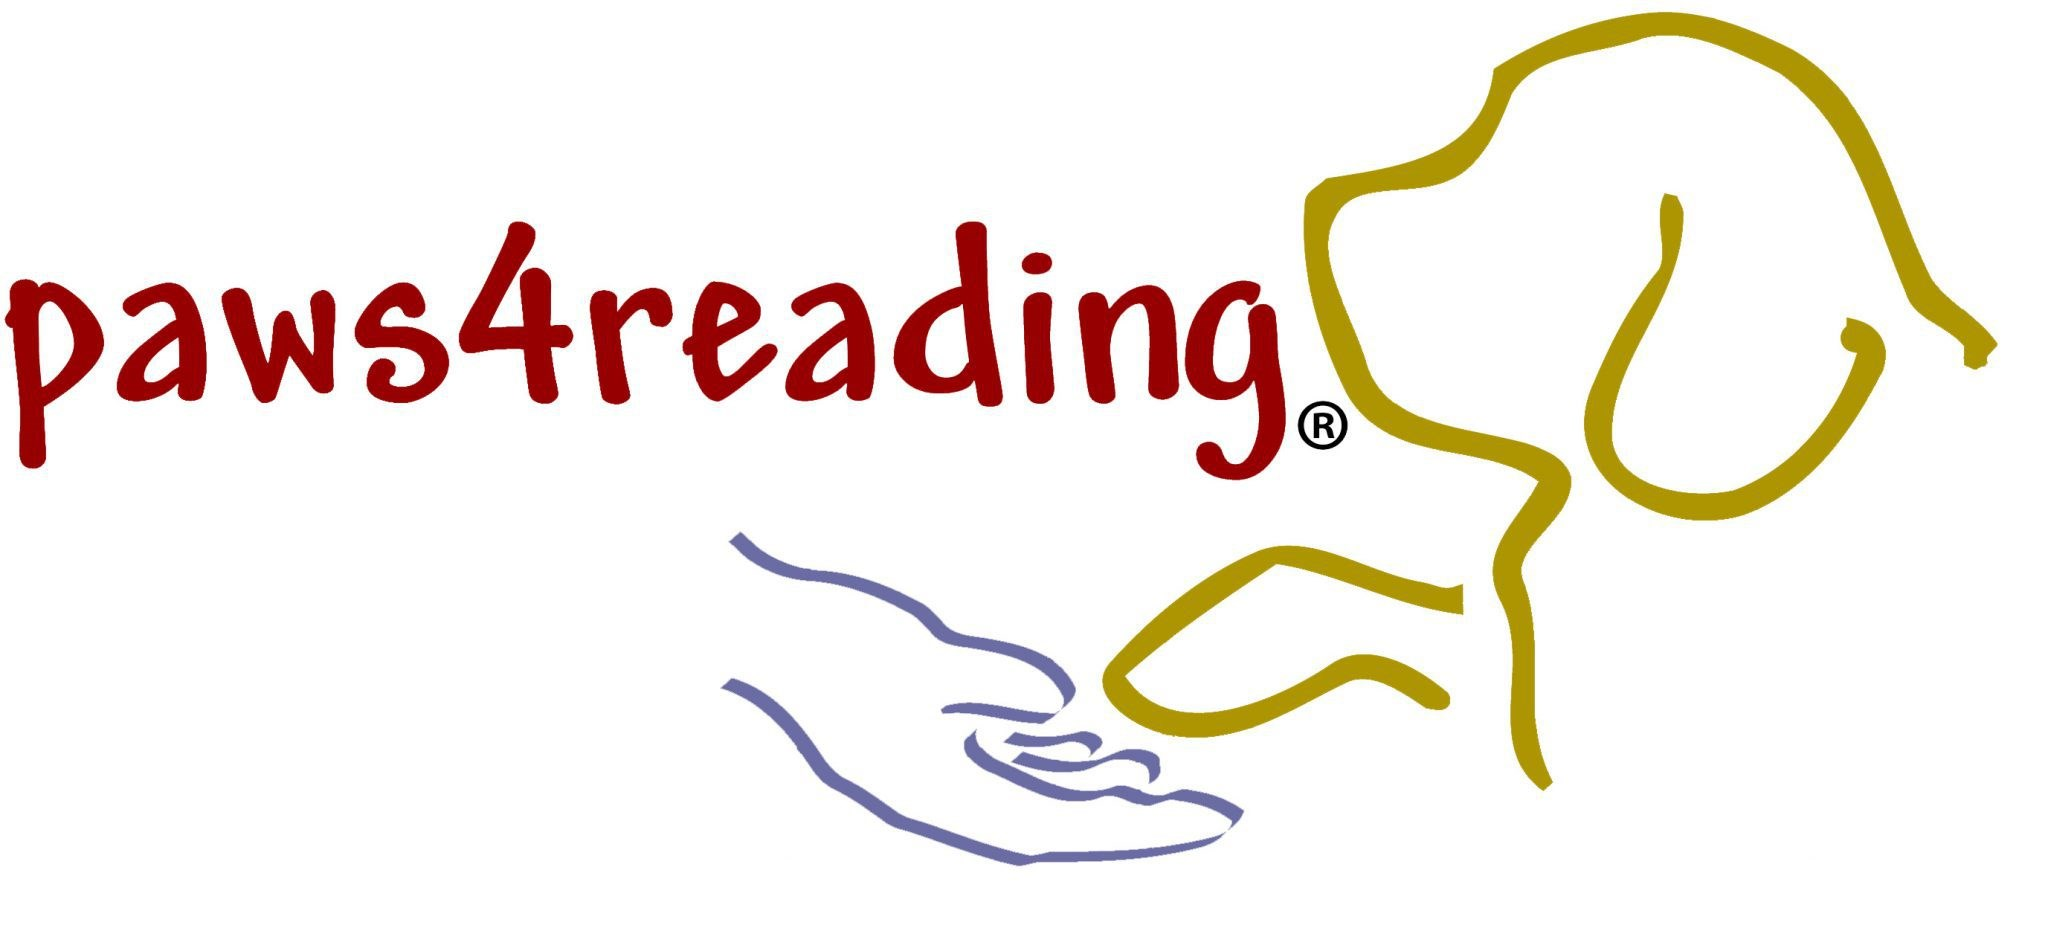 paws4reading logo